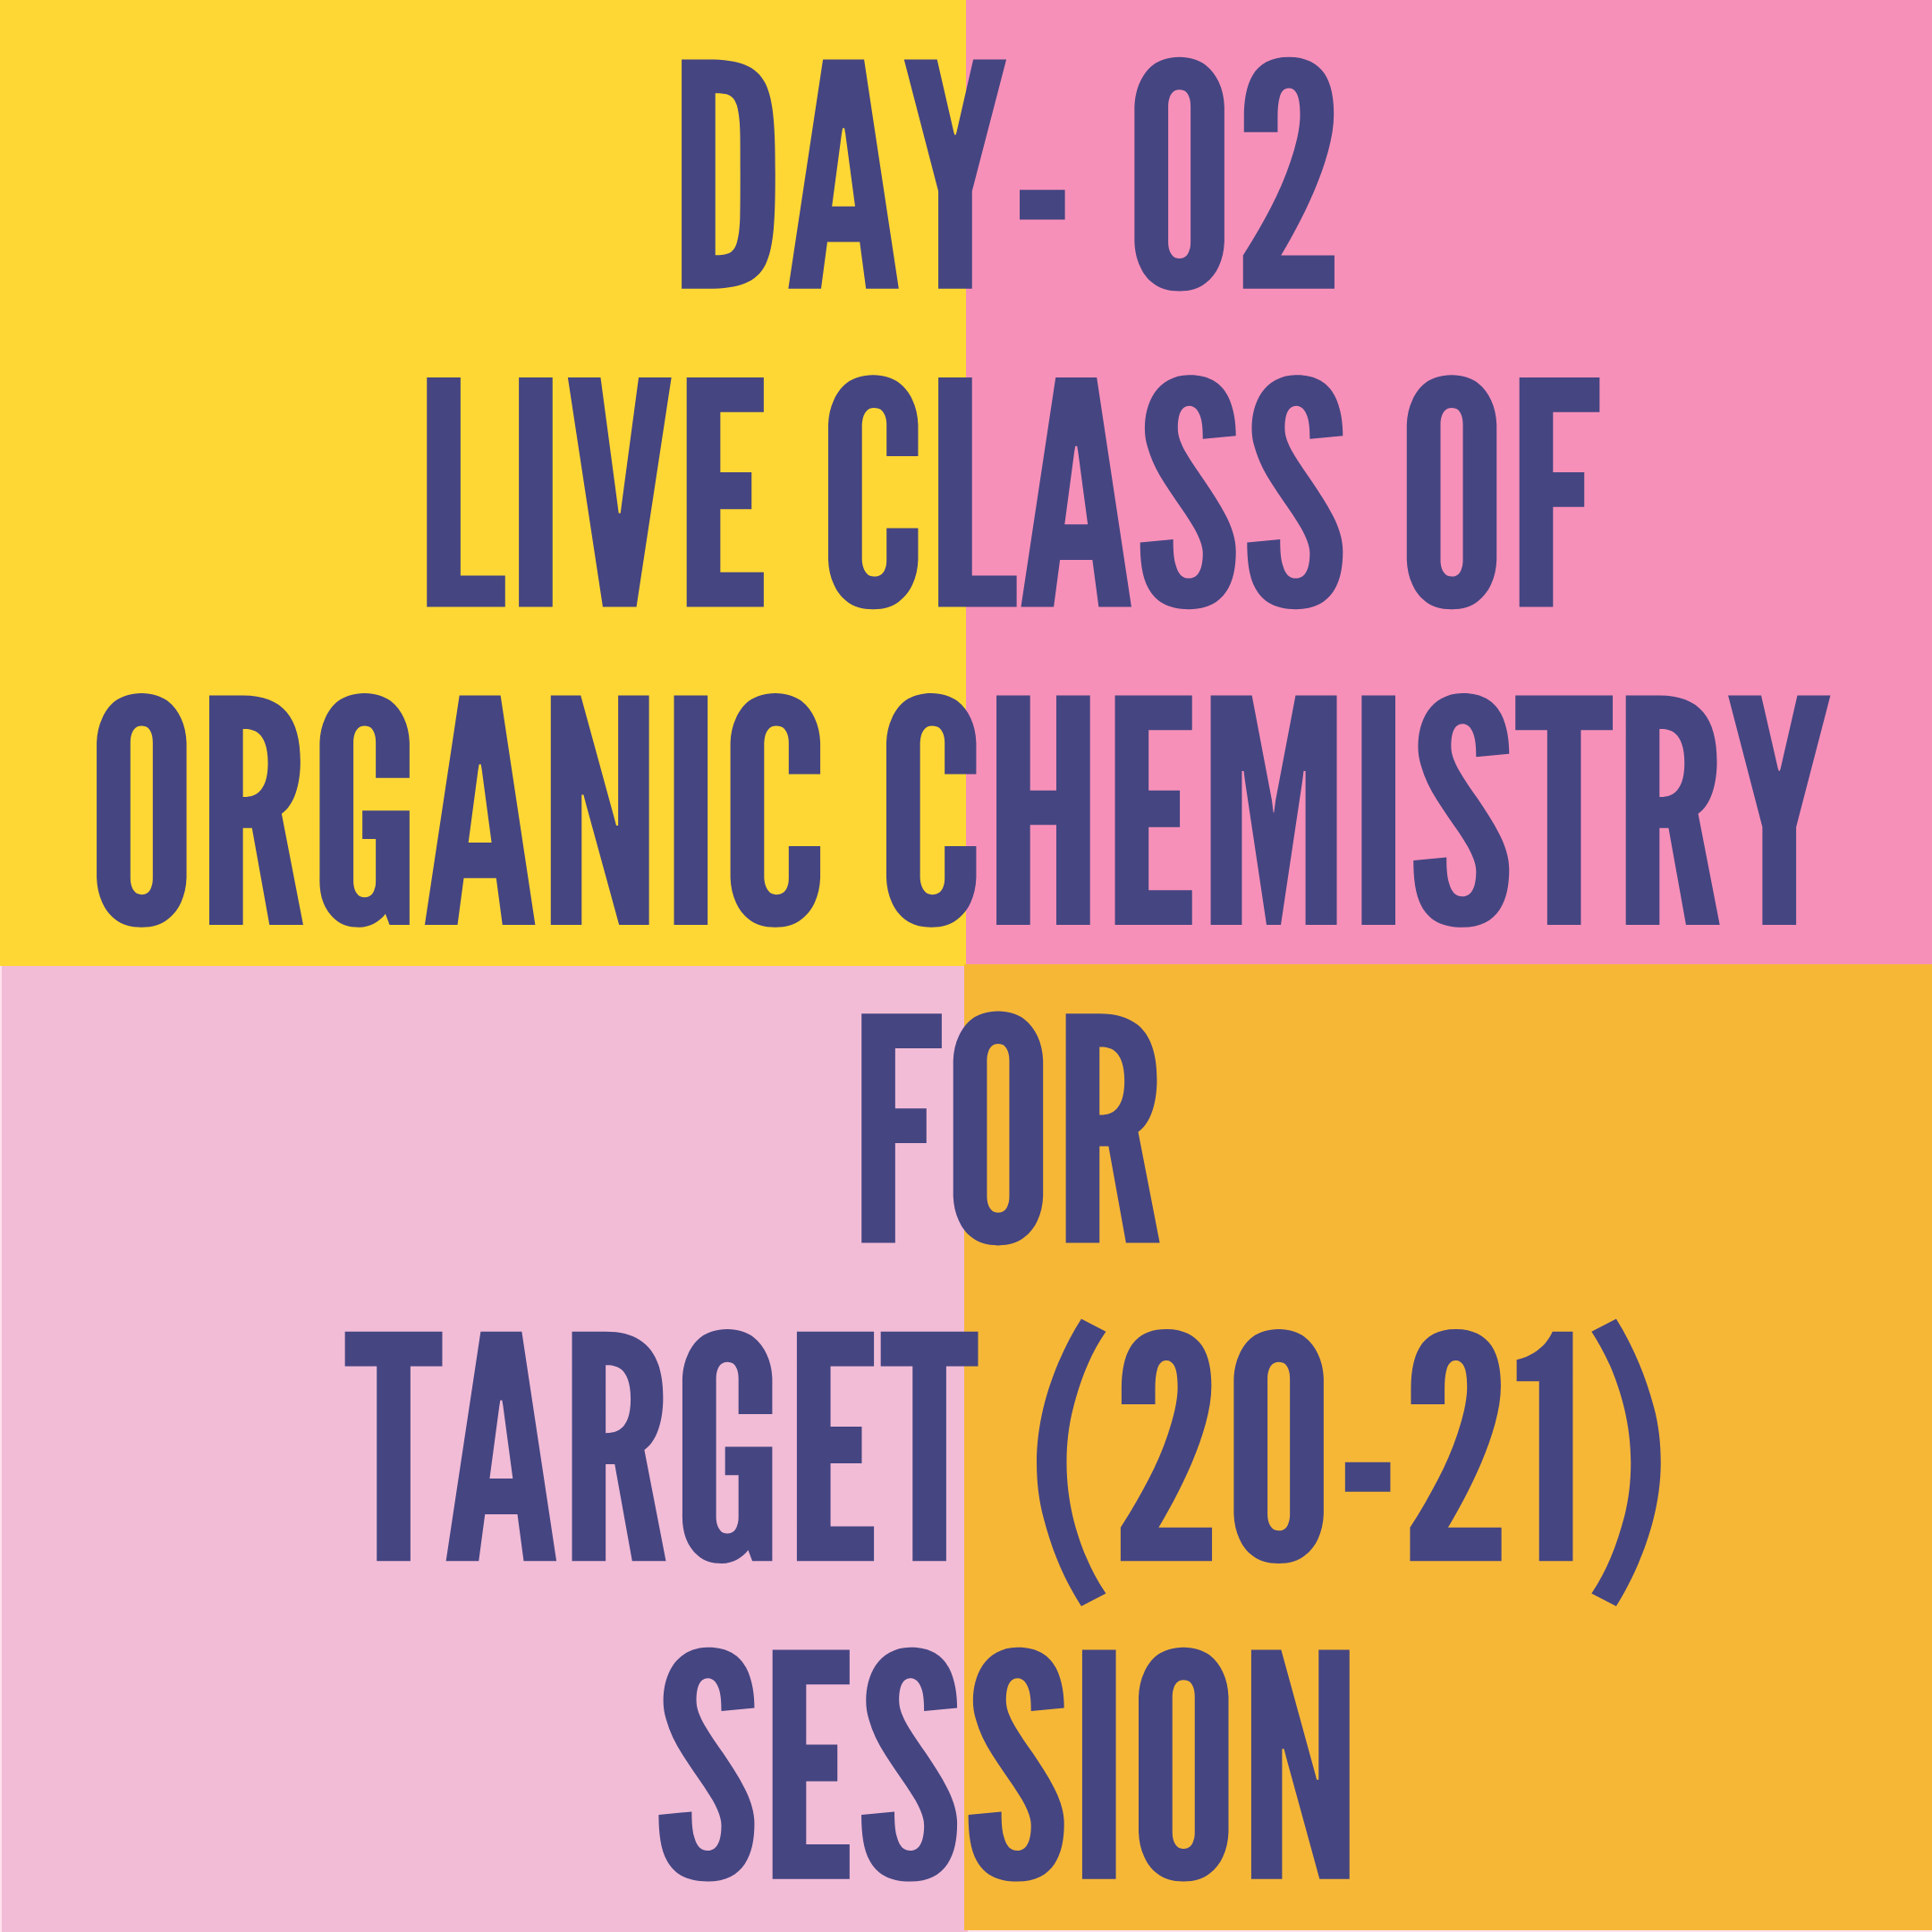 DAY- 02- LIVE CLASS OF ORGANIC CHEMISTRY  FOR TARGET (20-21) SESSION